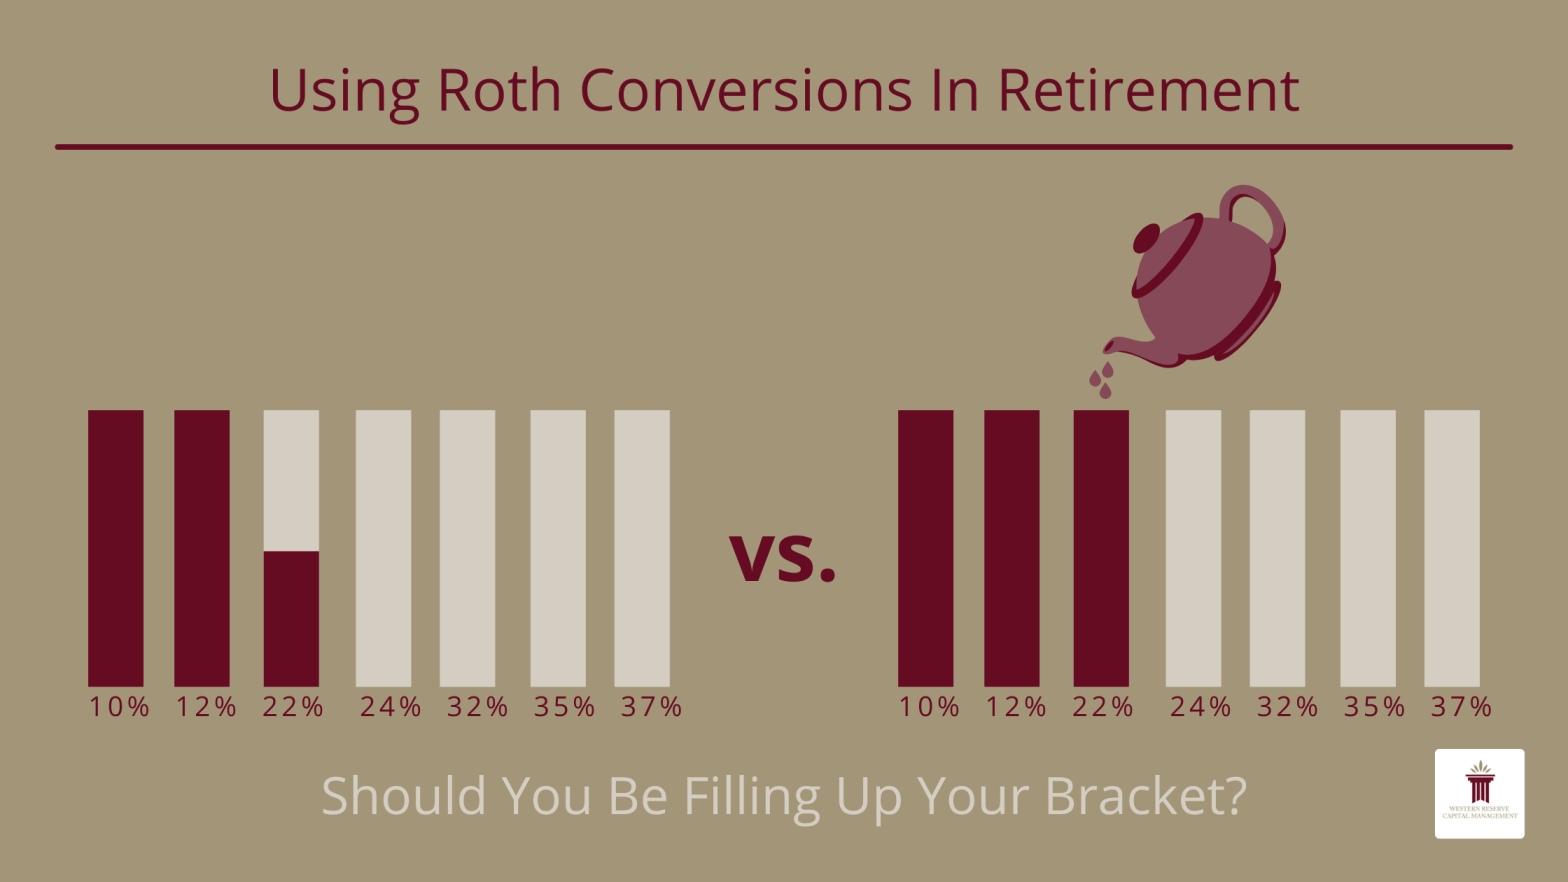 Using Roth Conversions in Retirement